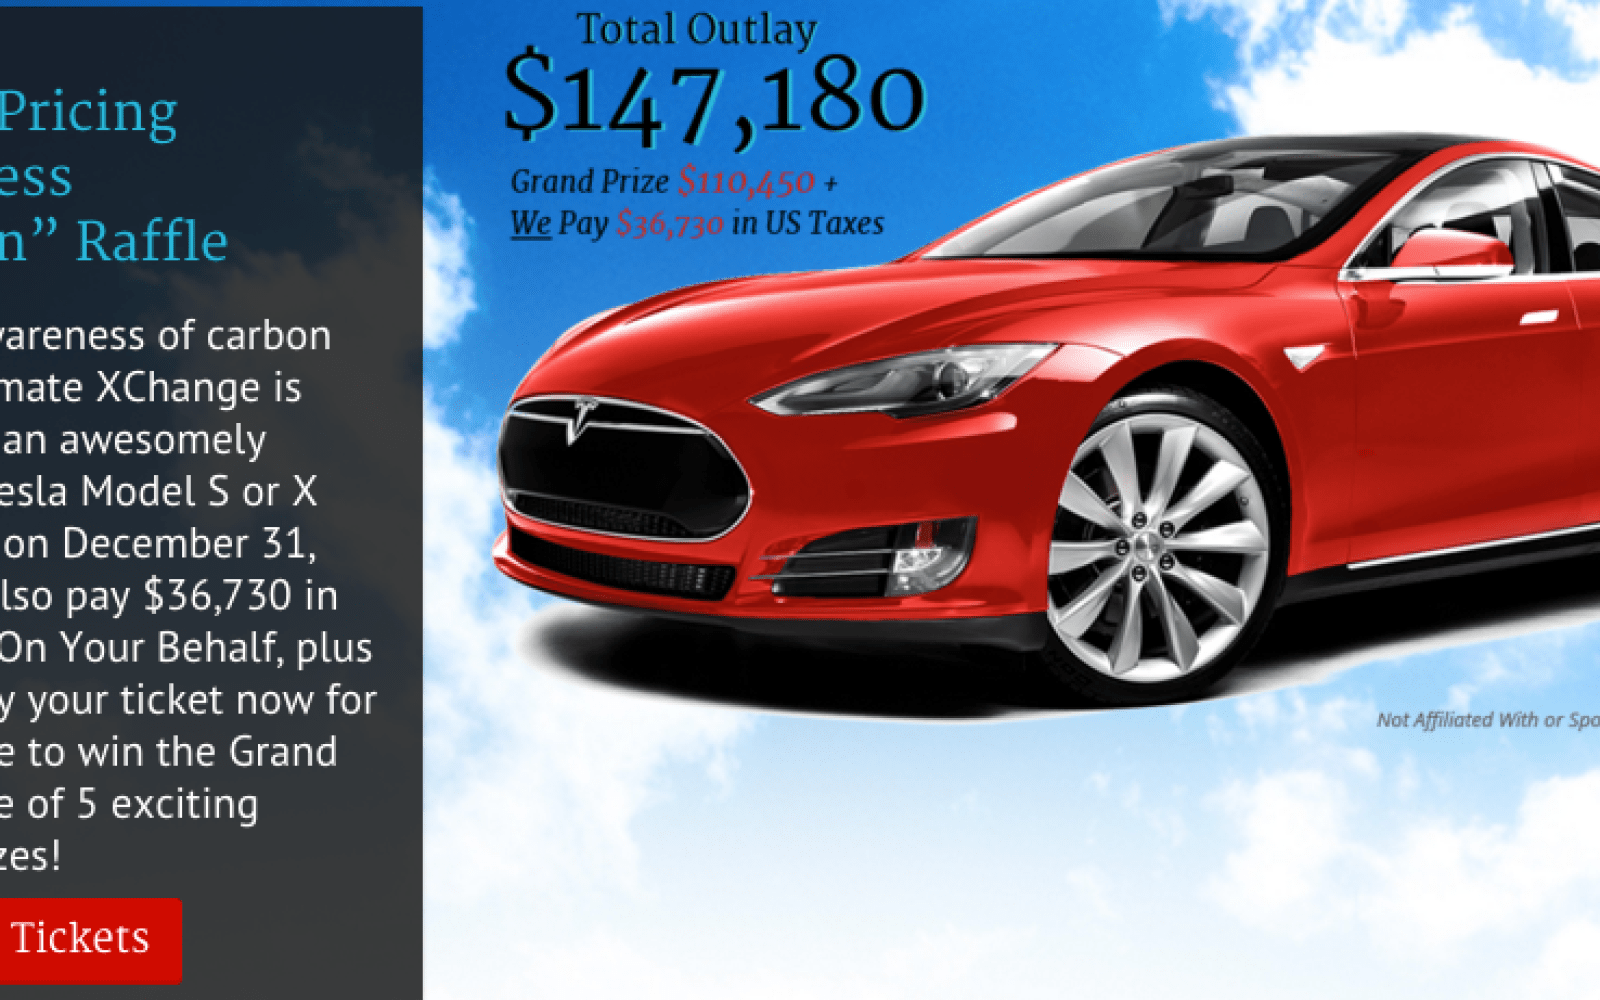 Raffle You Have A Chance To Win A Tesla Model S While